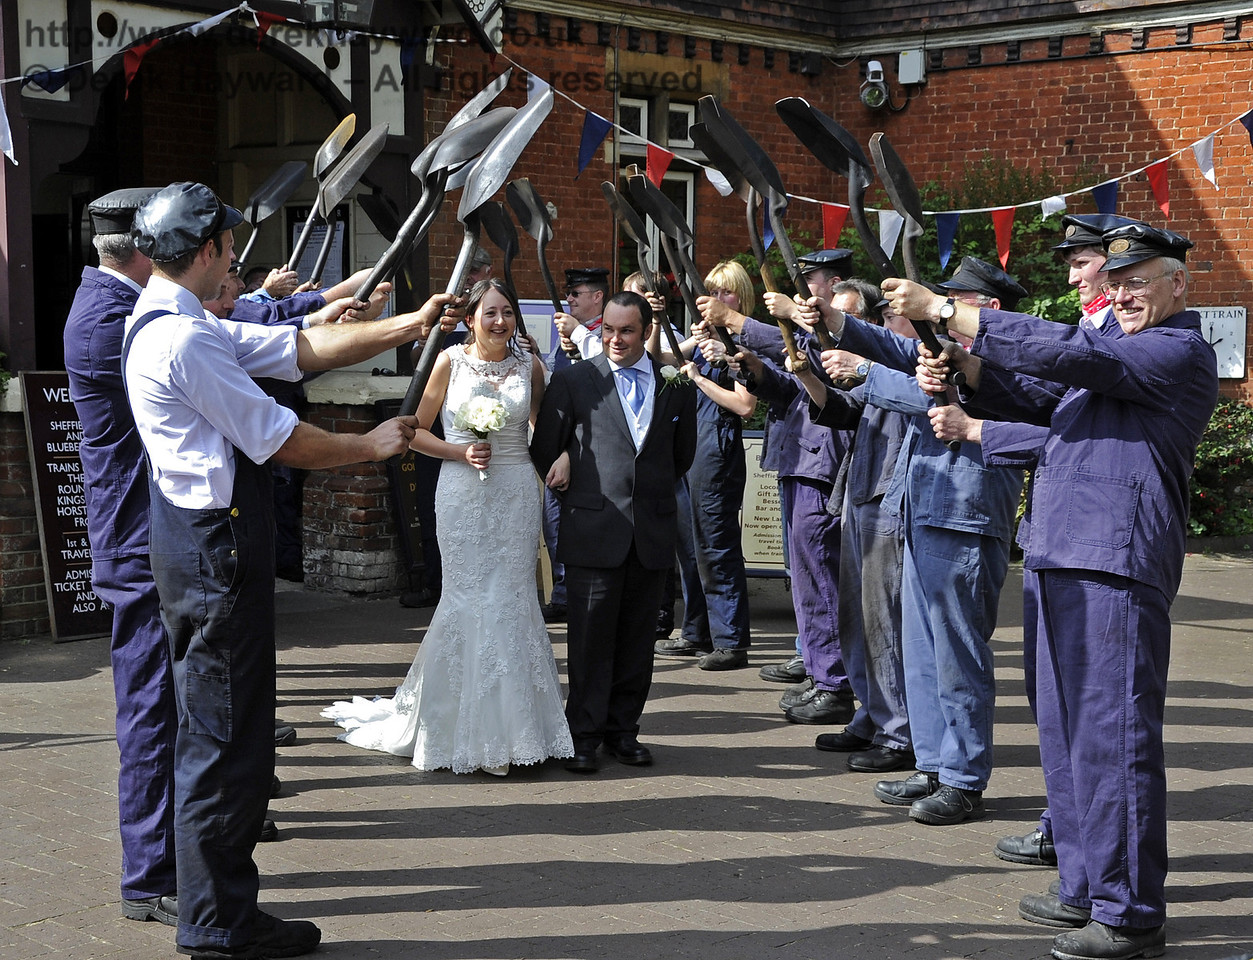 Members of the Loco Department form an Honour Guard outside Sheffield Park Station for the wedding of Simon Blaker & Becky Dallimore.  15.09.2012  5677